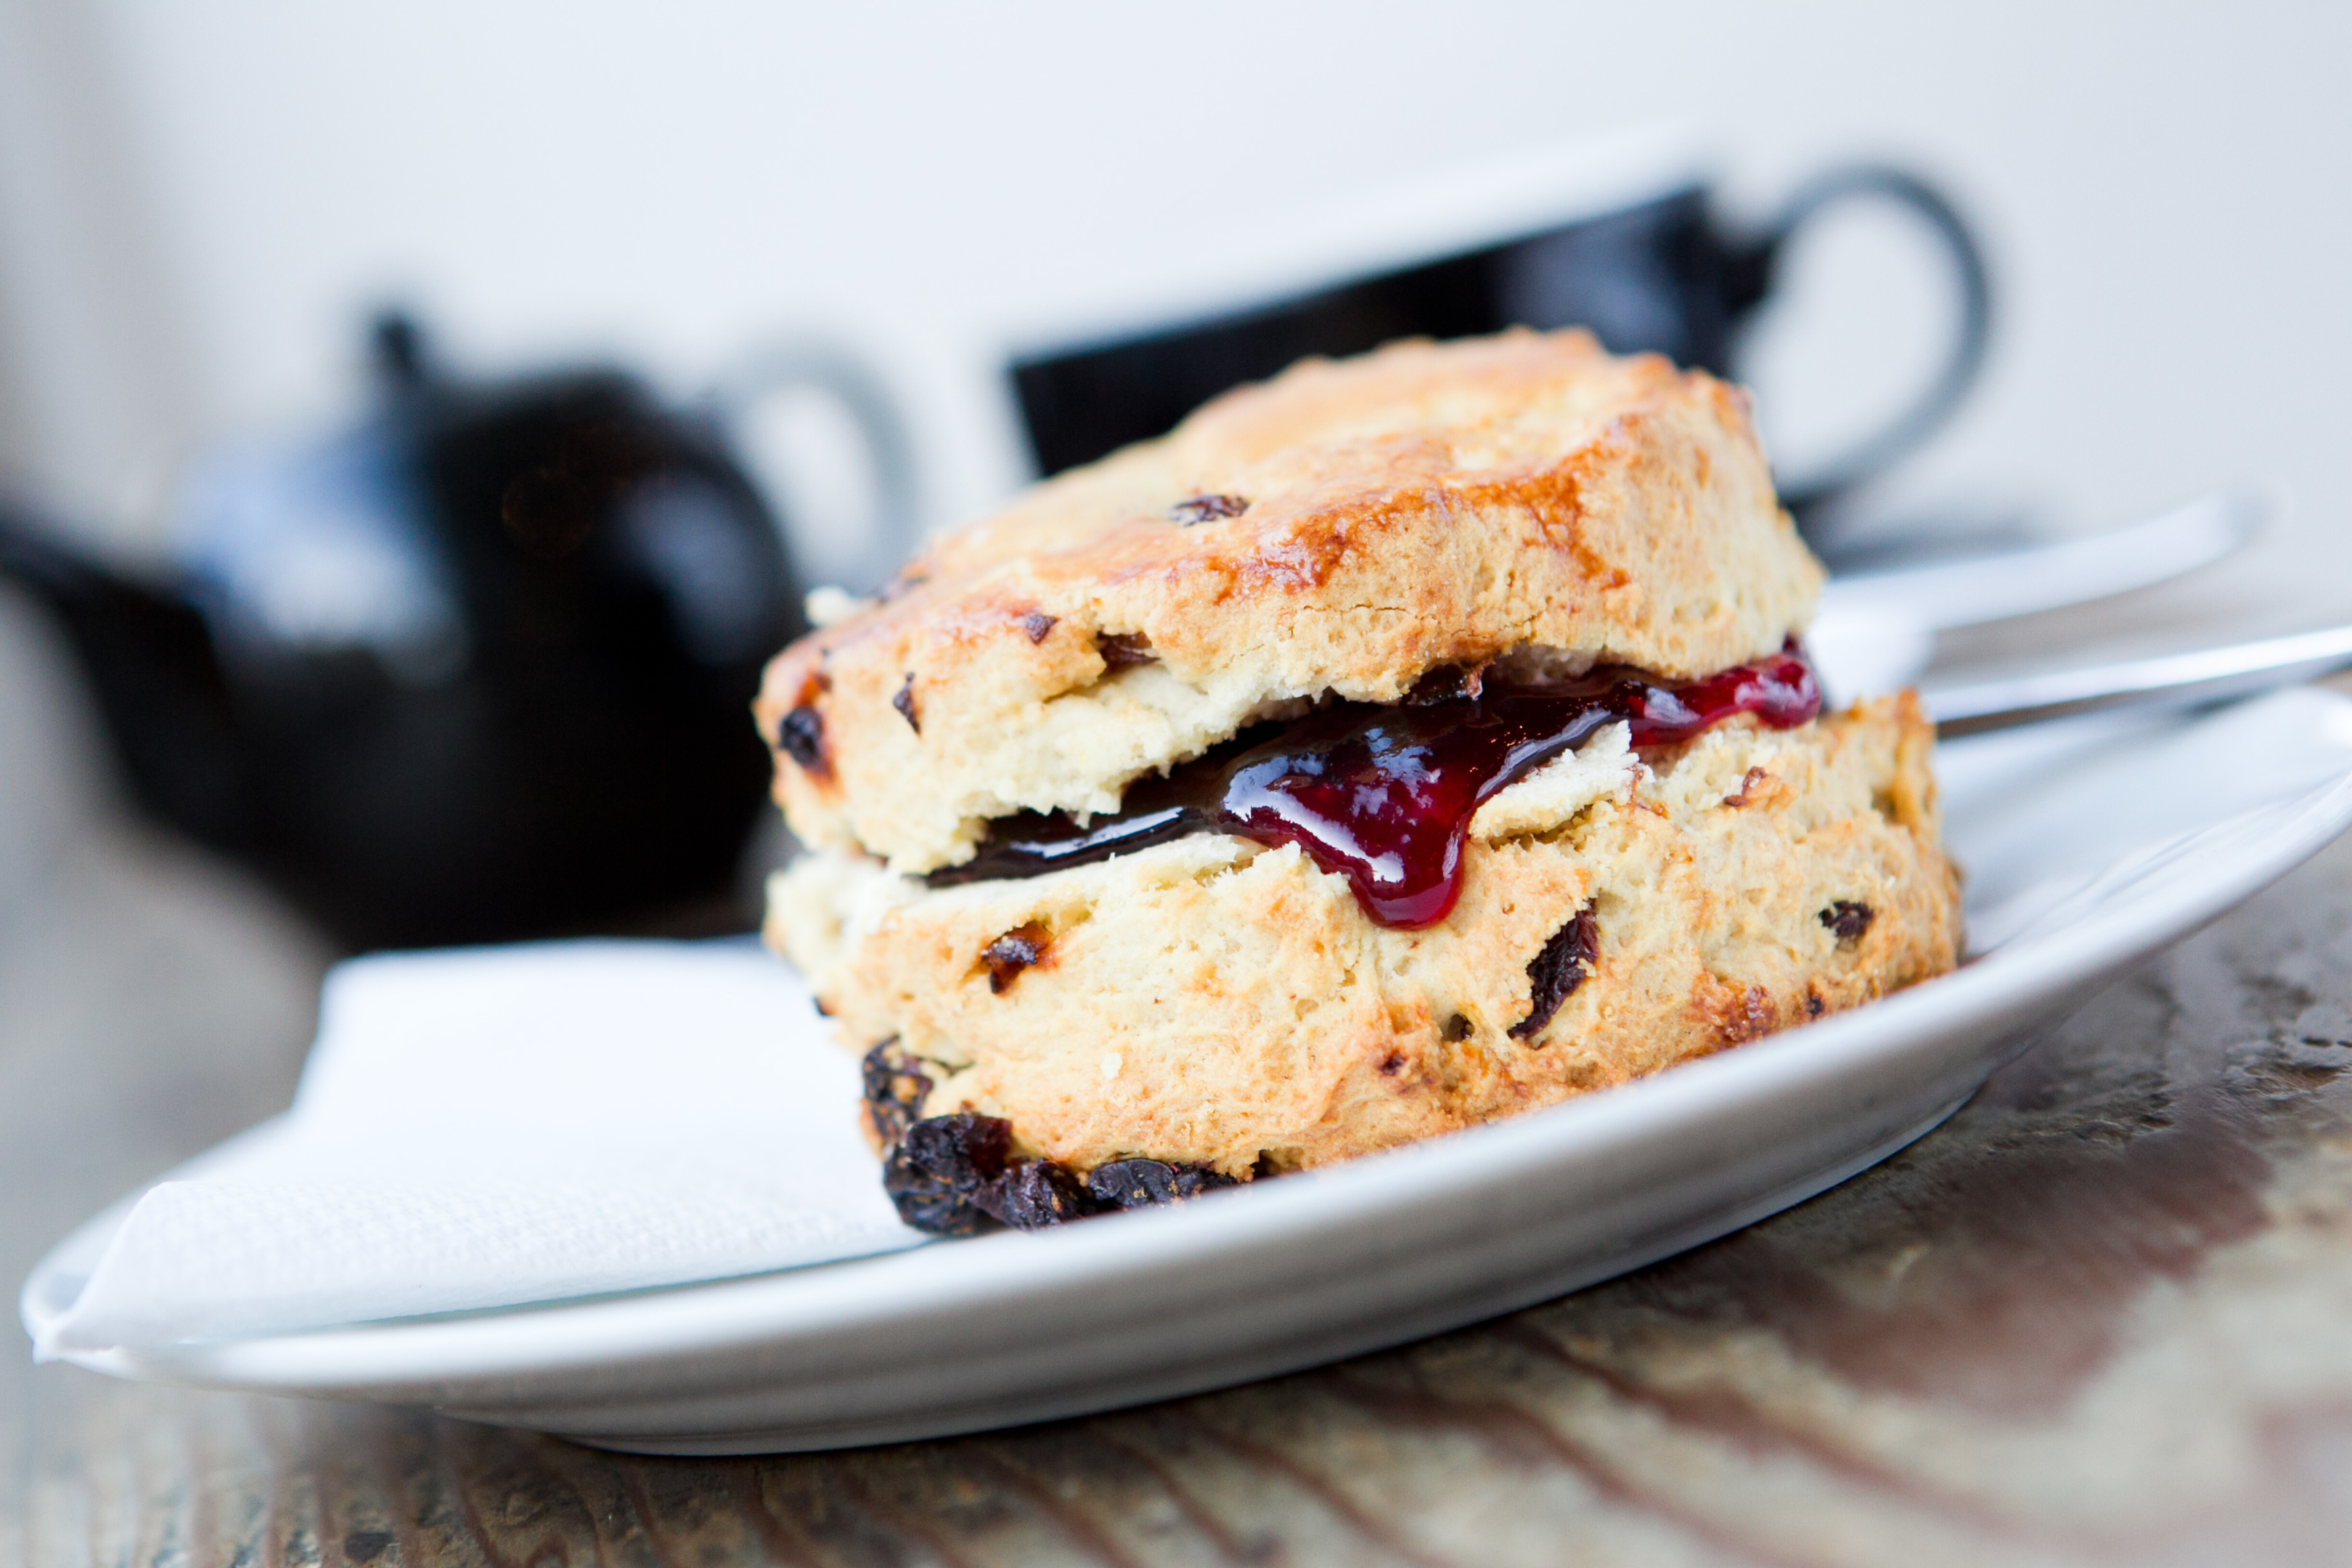 Riverhill Coffee Bar's scone (Andrew Cawley / DC Thomson)